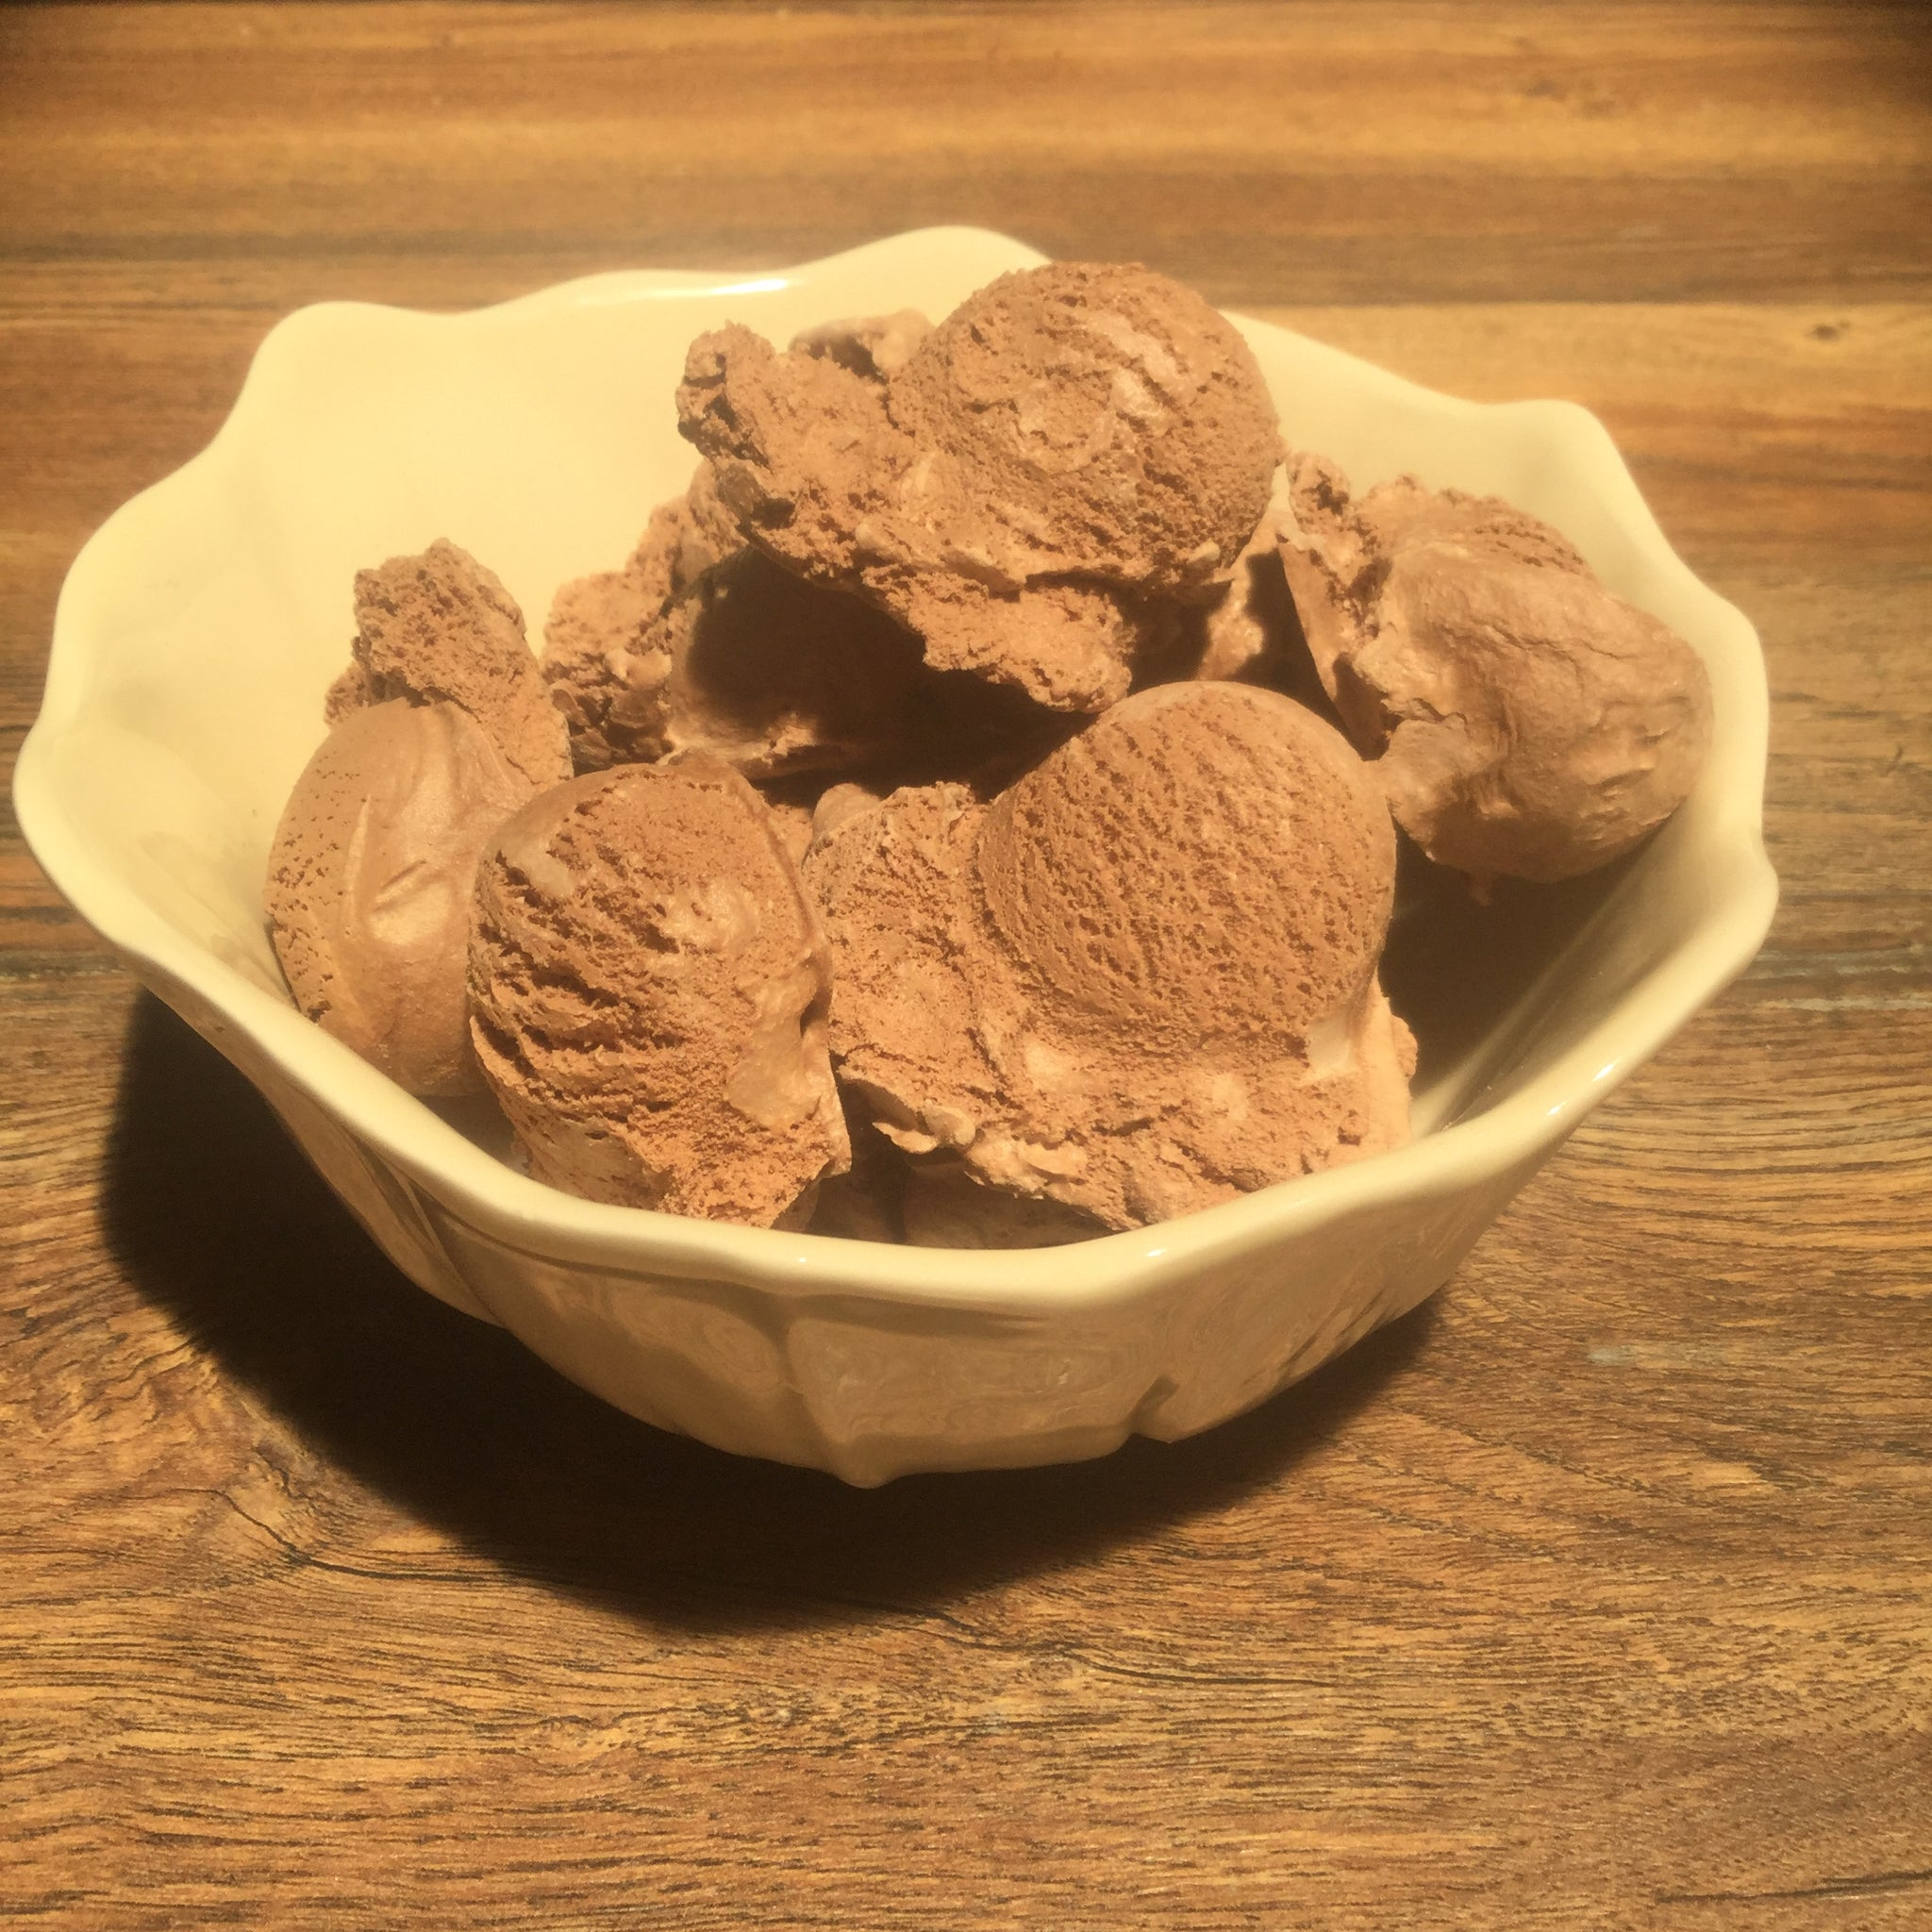 Freeze Dried Chocolate Ice Cream Outdoorpantry Inc